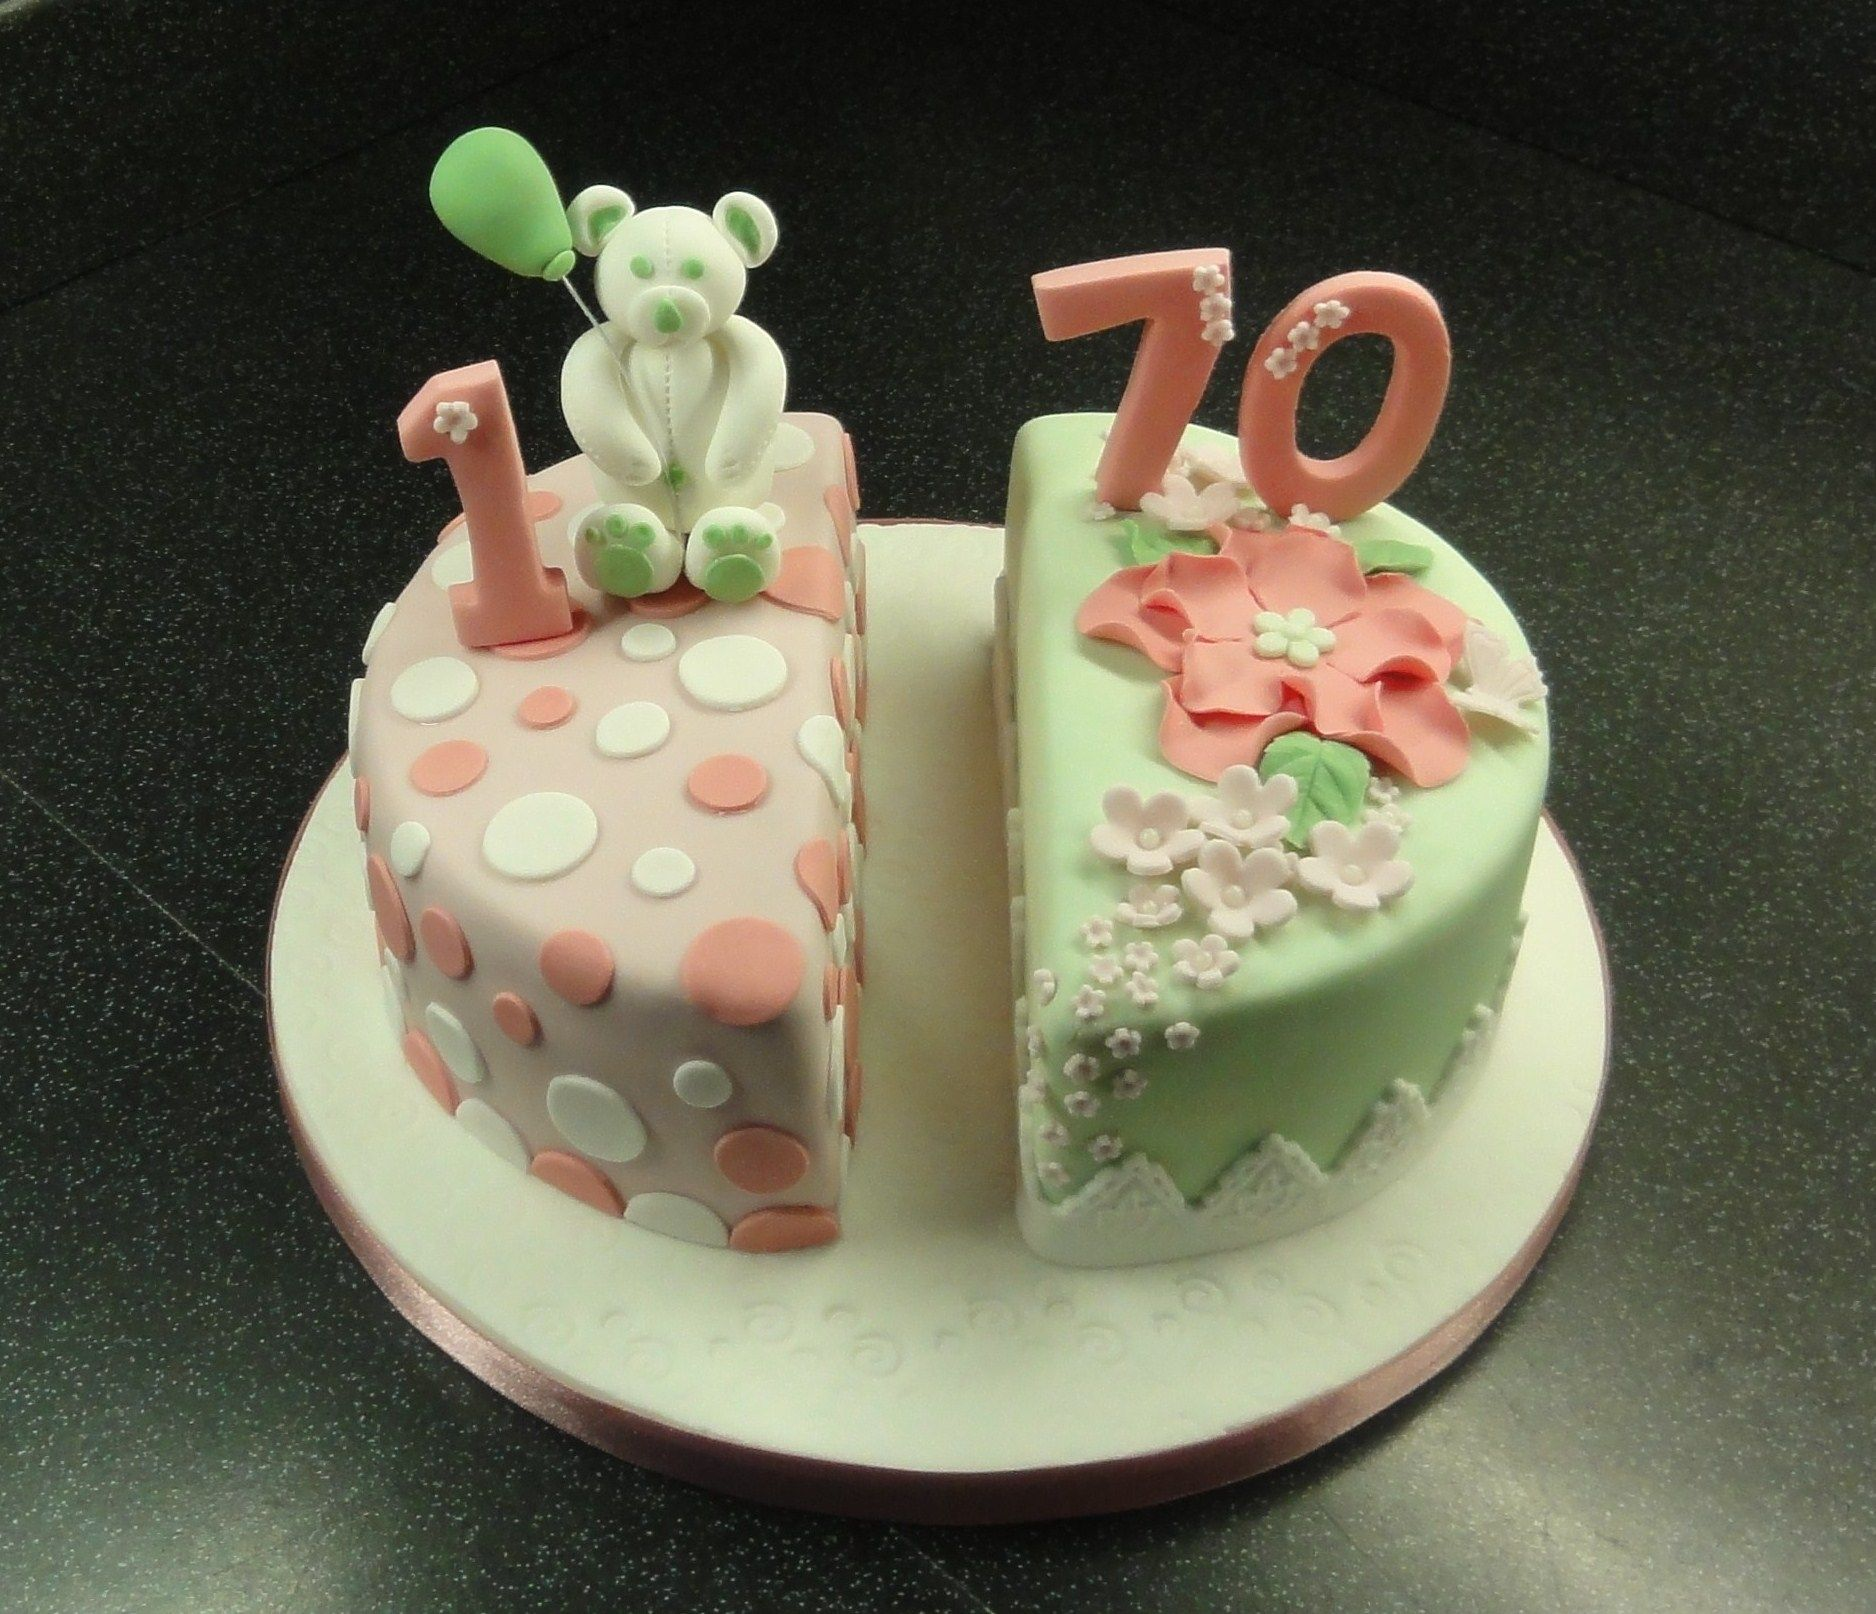 Joint Birthday Cake Great Idea Maybe Aqua White Red On Boy Side Lavender Girl